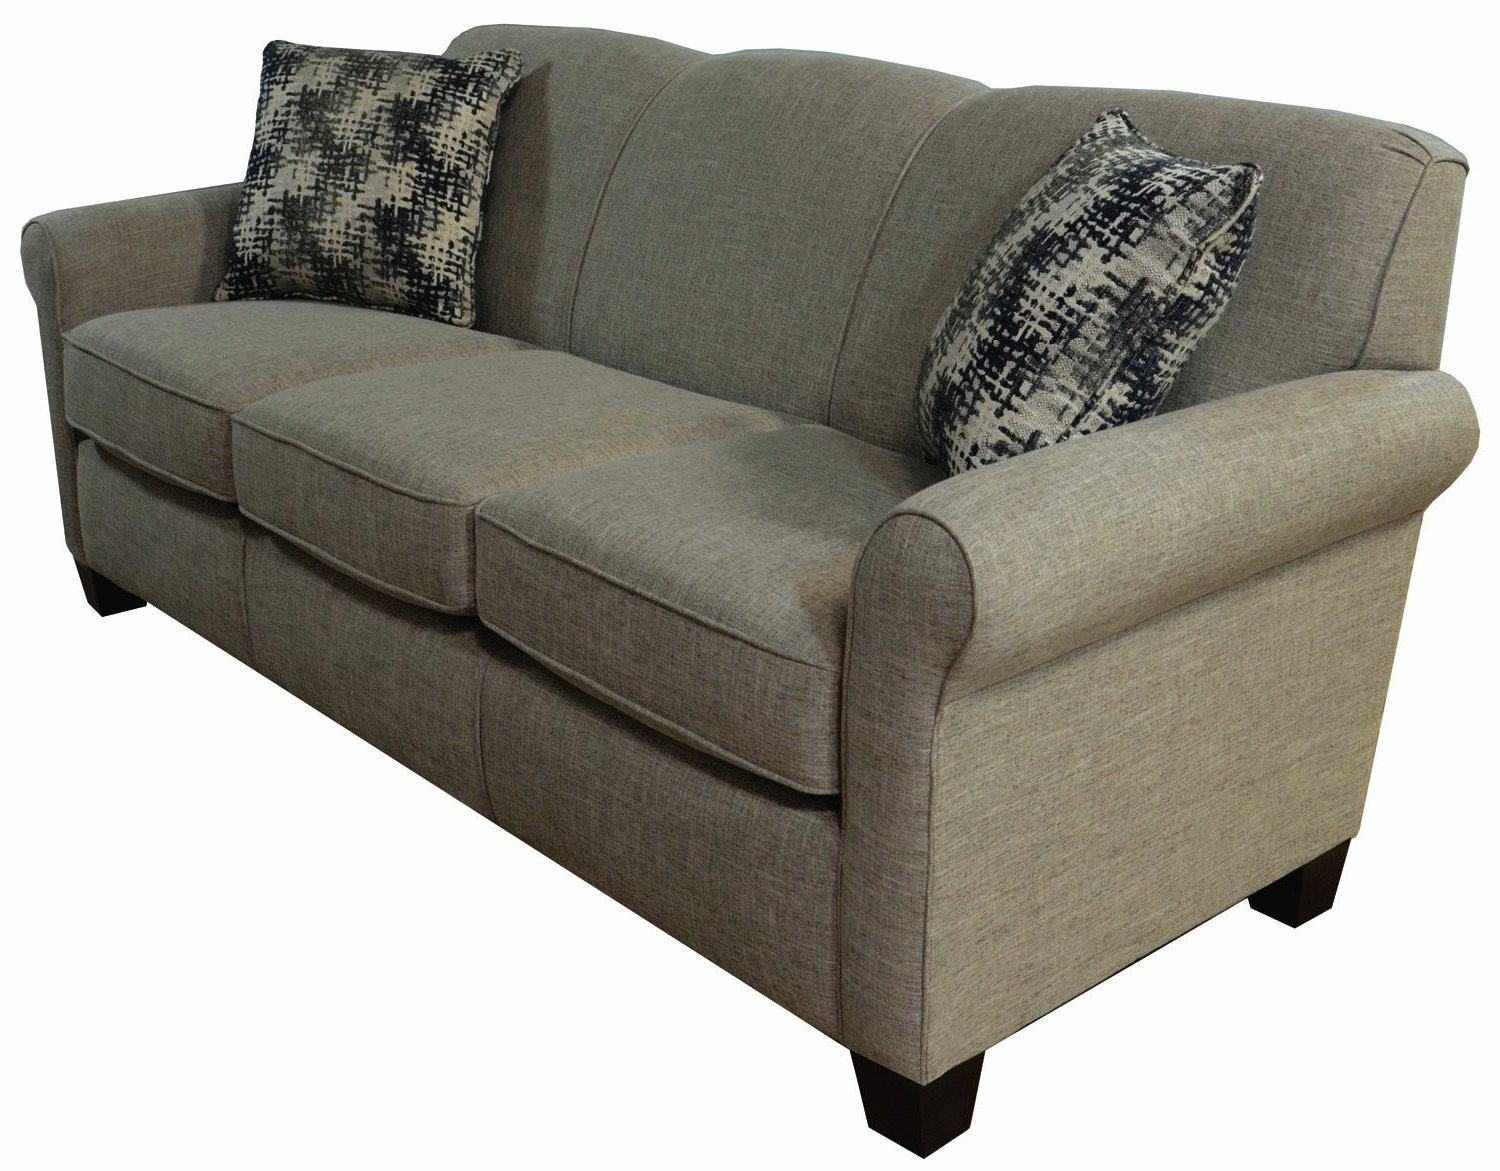 Best And Newest Newport Sofa, Frontroom Express – Frontroom Furnishings Inside Newport Sofas (View 9 of 15)